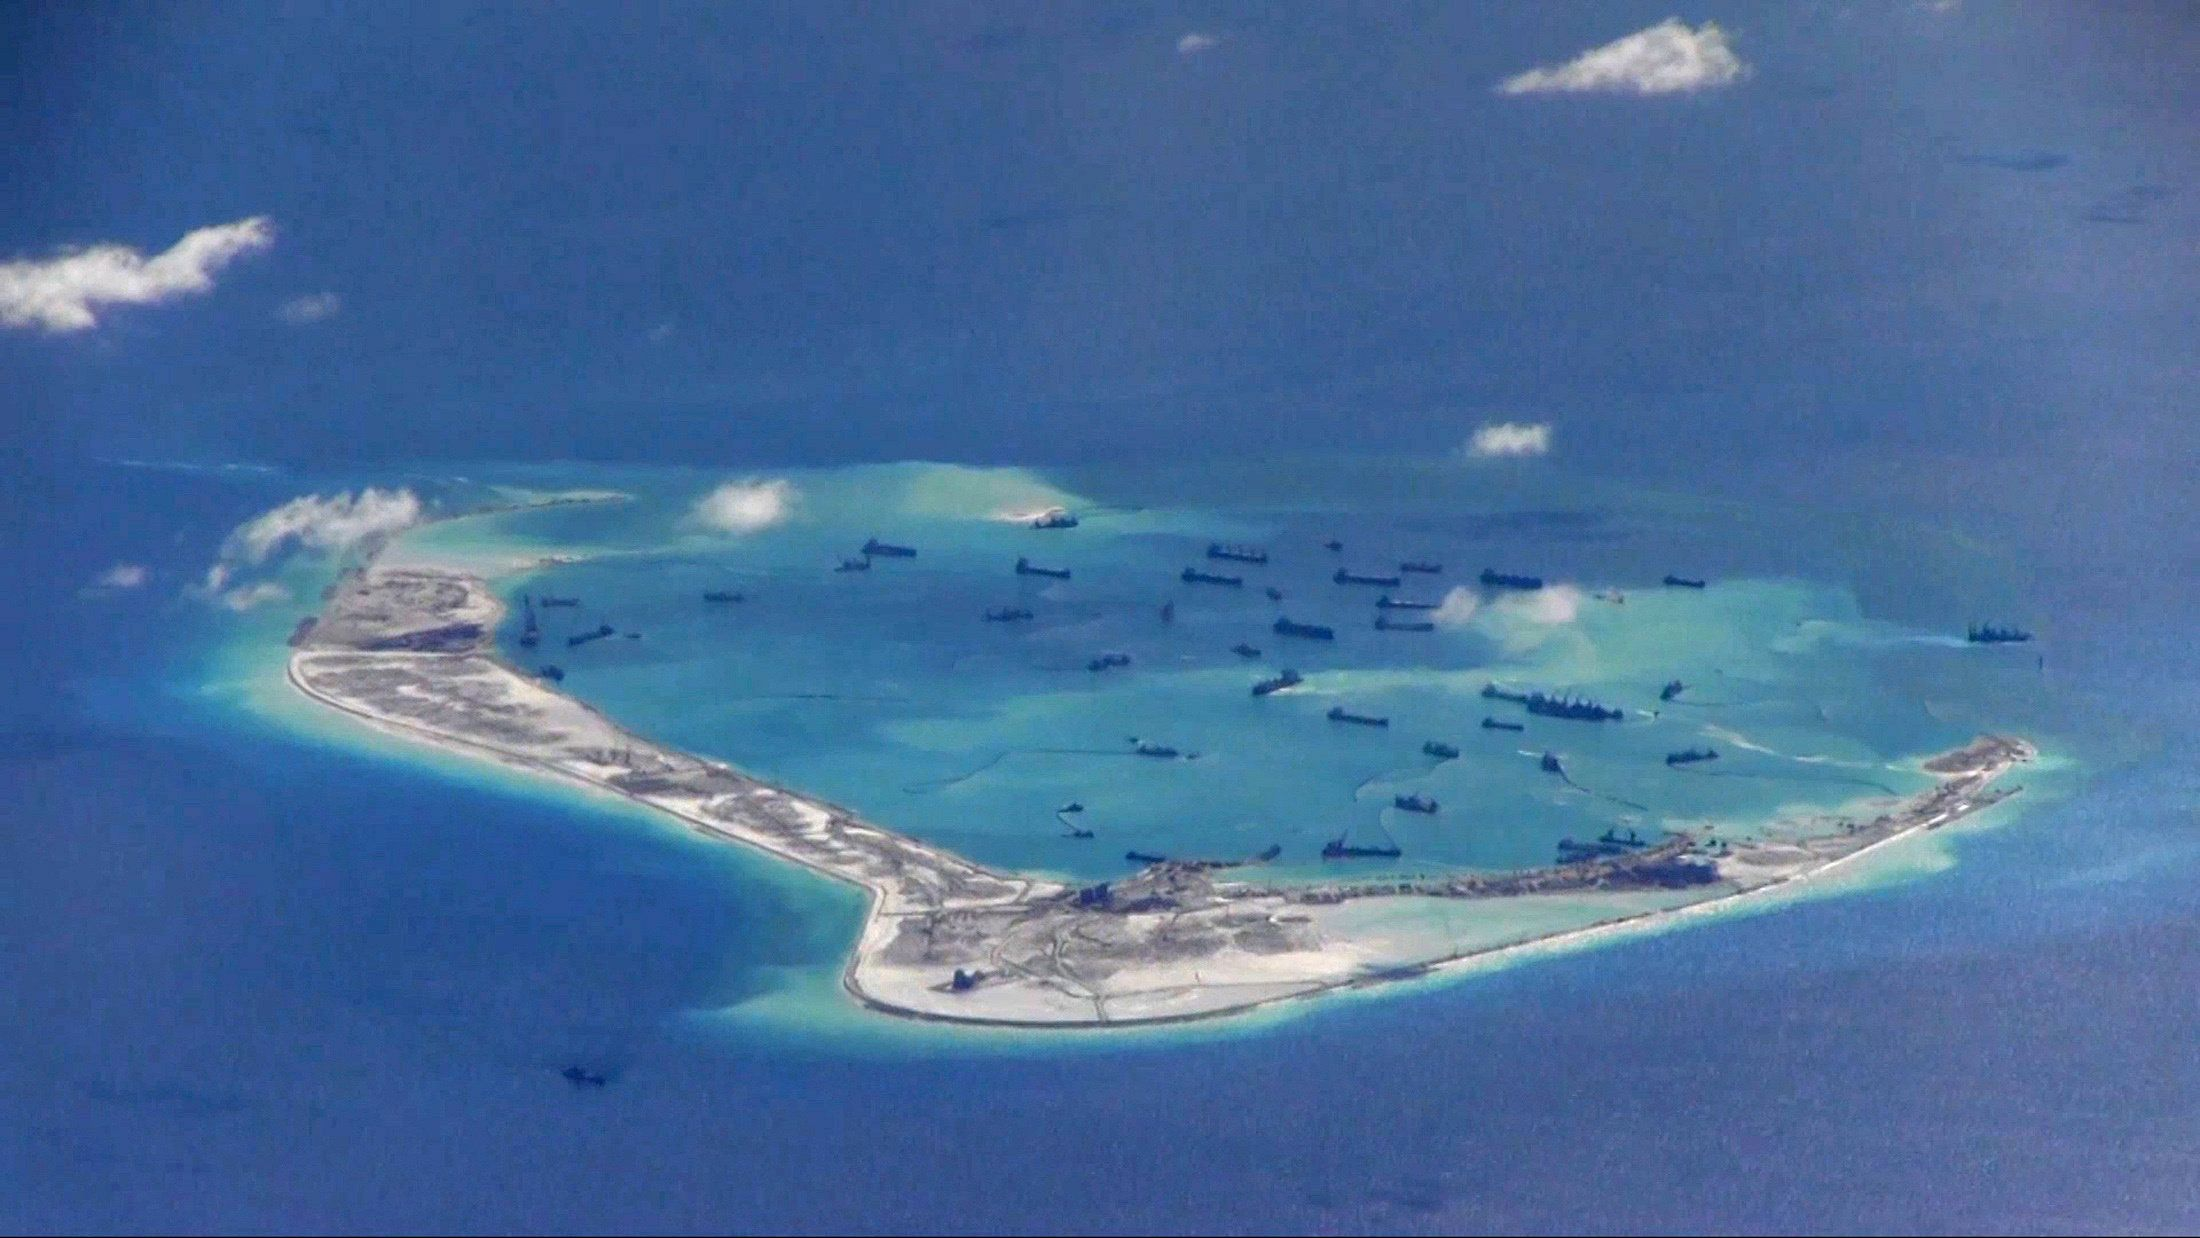 Mischief Reef Spratly Islands South China Sea